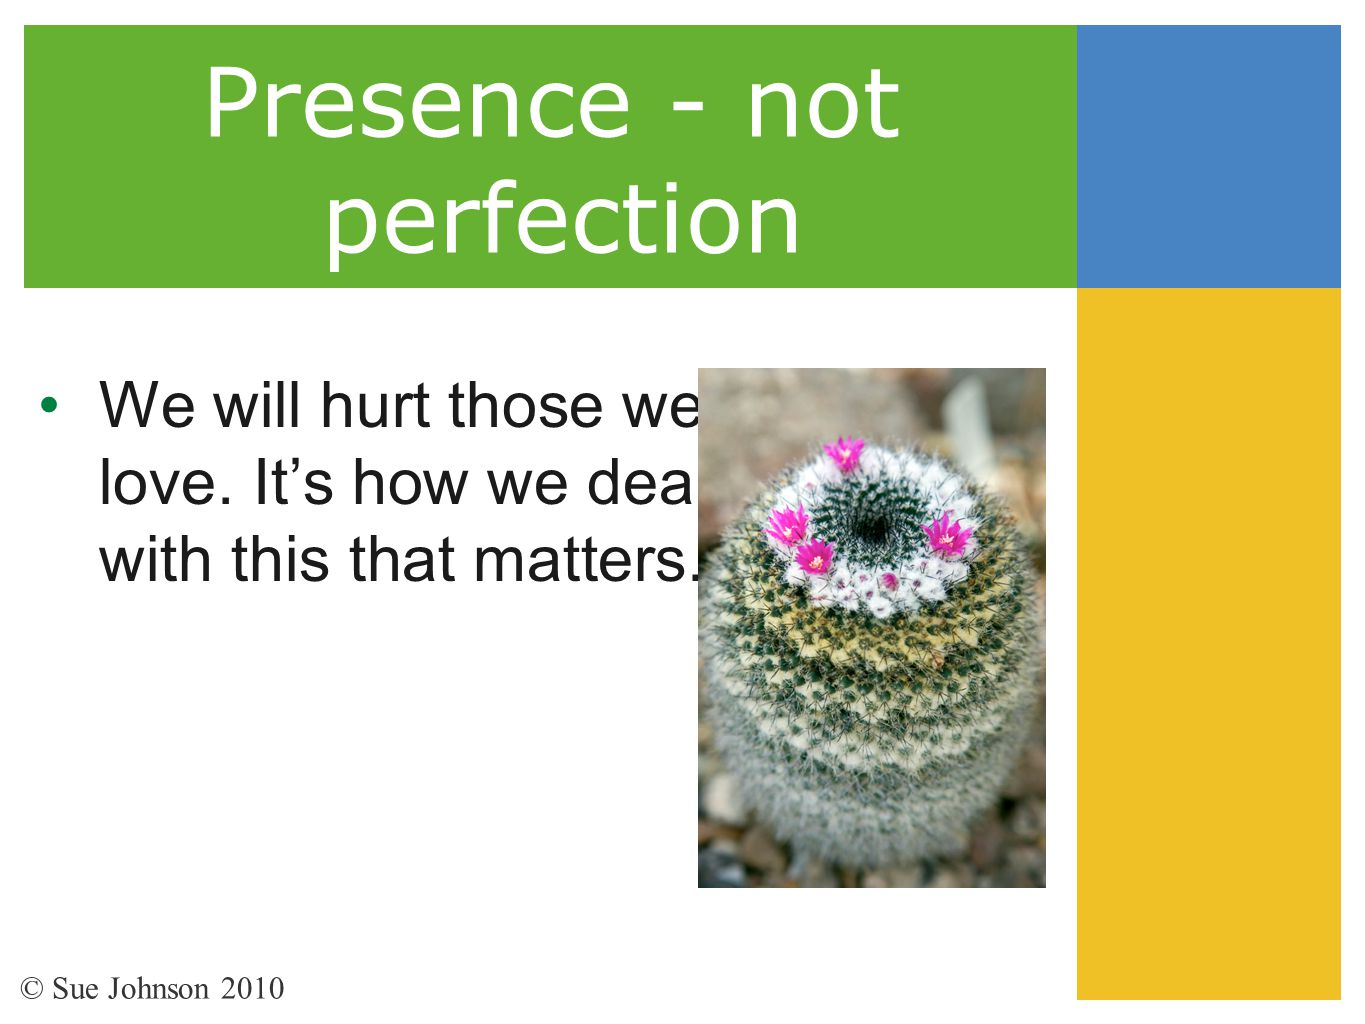 Presence - not perfection We will hurt those we love. It's how we deal with this that matters. © Sue Johnson 2010